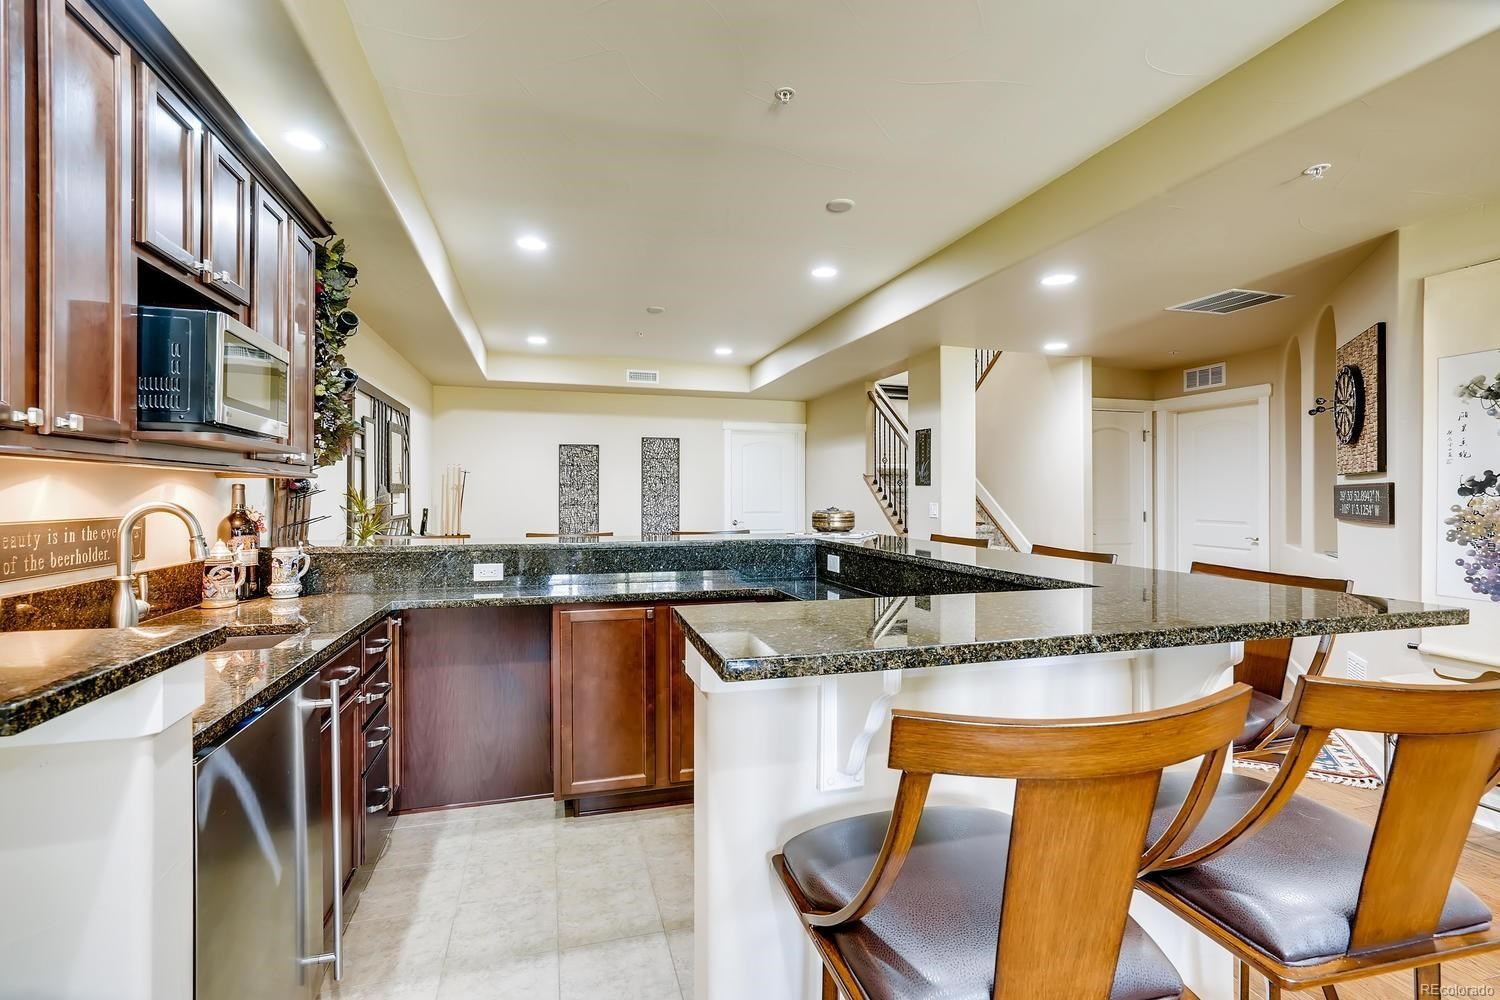 MLS# 2956952 - 21 - 2065 Primo Road #C, Highlands Ranch, CO 80129